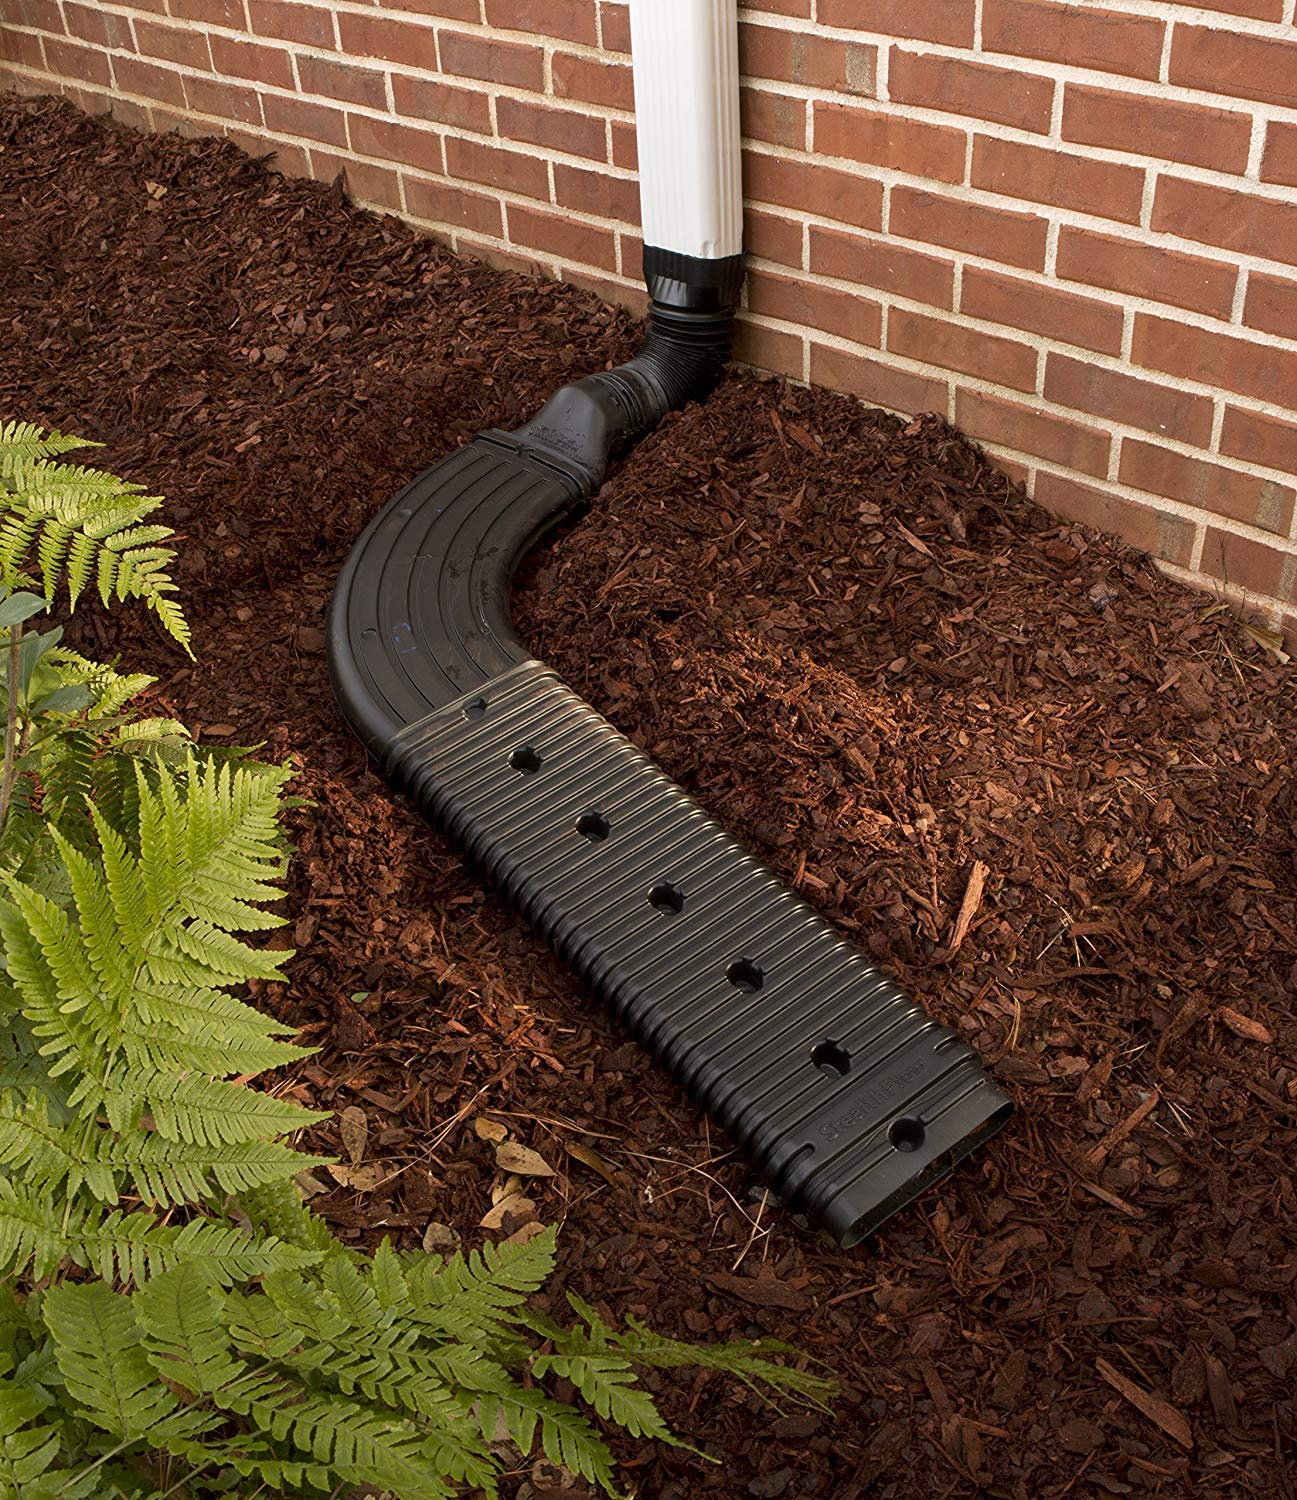 WholesalePlumbing Combo Pack Low Profile Downspout Adapter Drainage Kit with Additional 24-in Black Extension